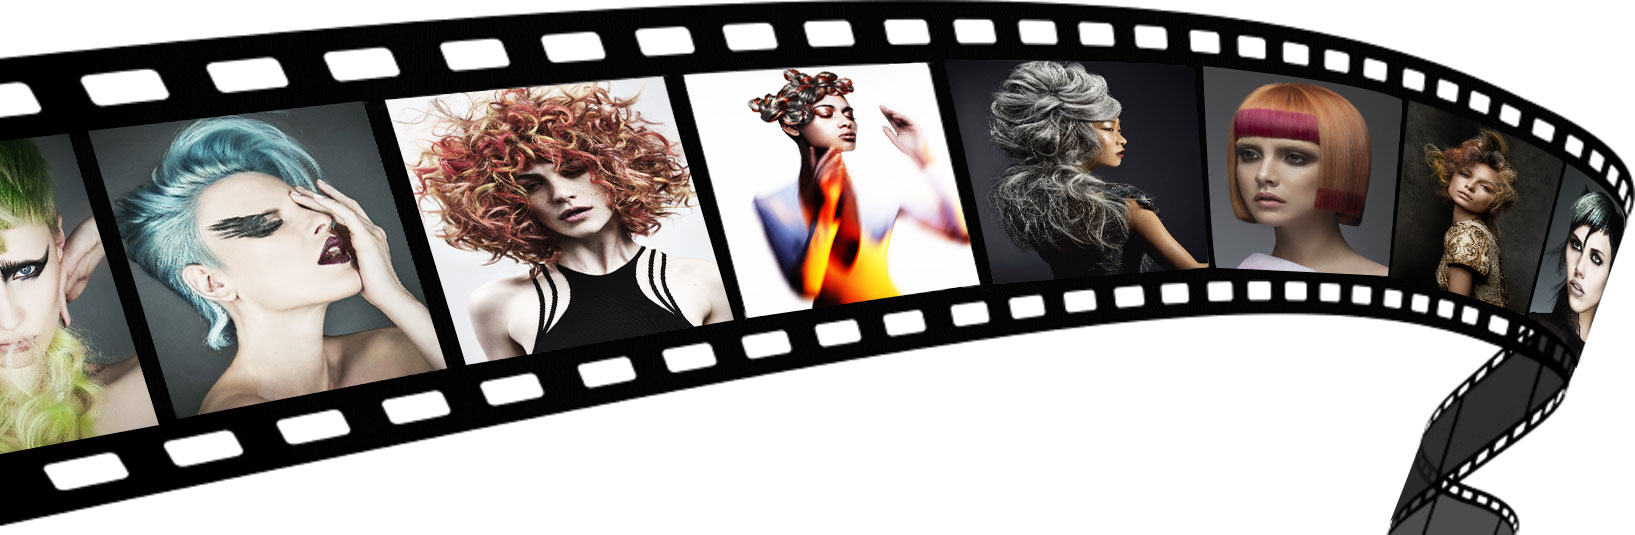 hair fashion video